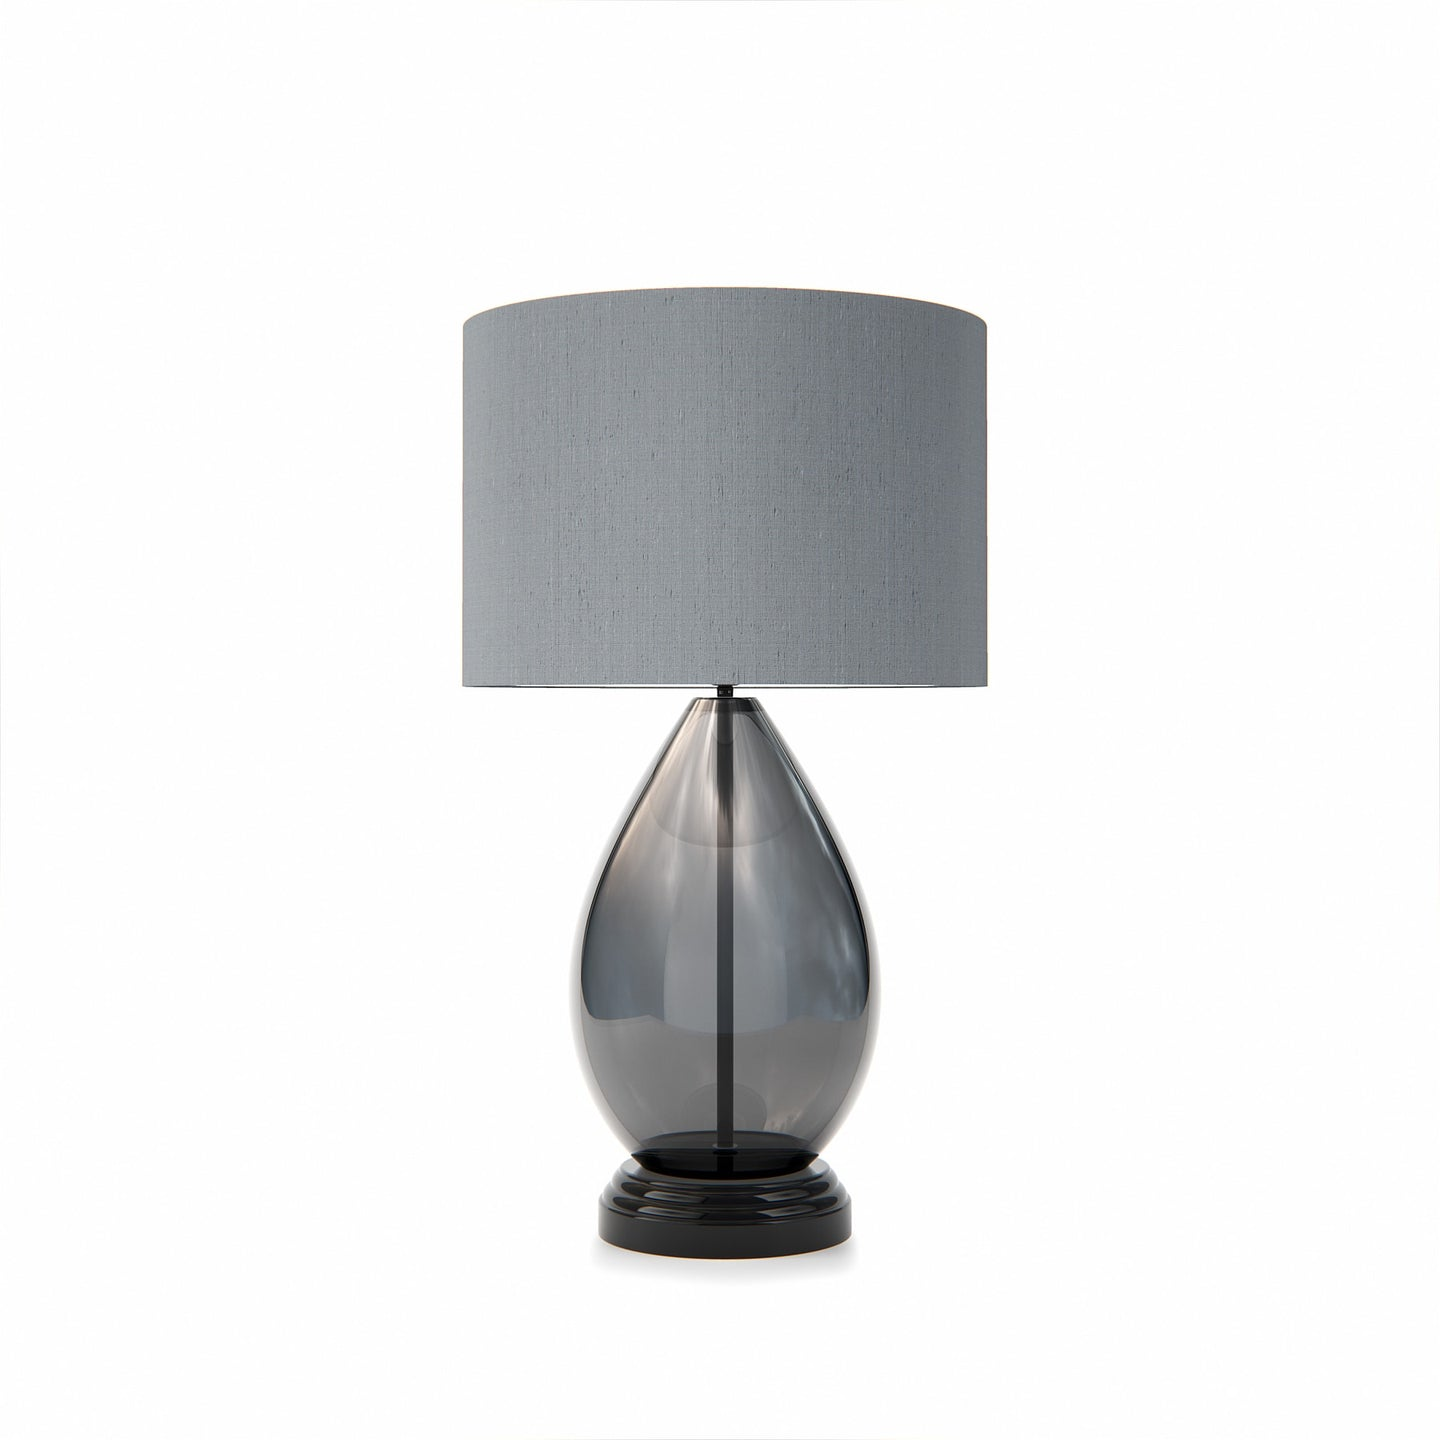 Blenheim Cordless Lamp made by Alexander Joseph for AUTHOR's luxury collection of home accessories